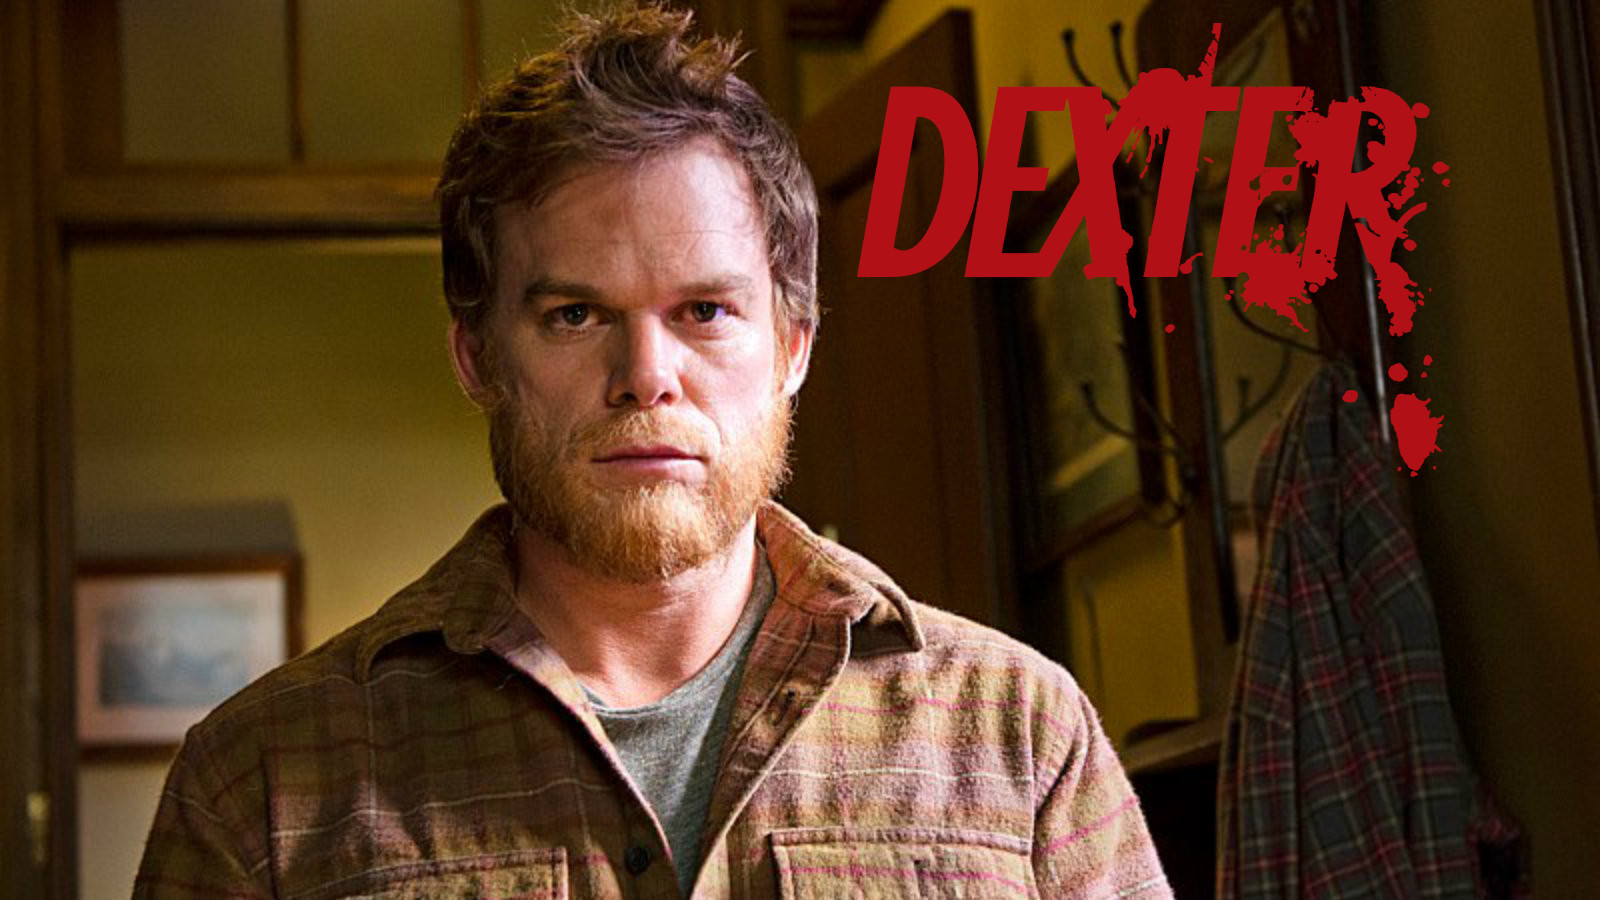 Dexter at the end of season 8